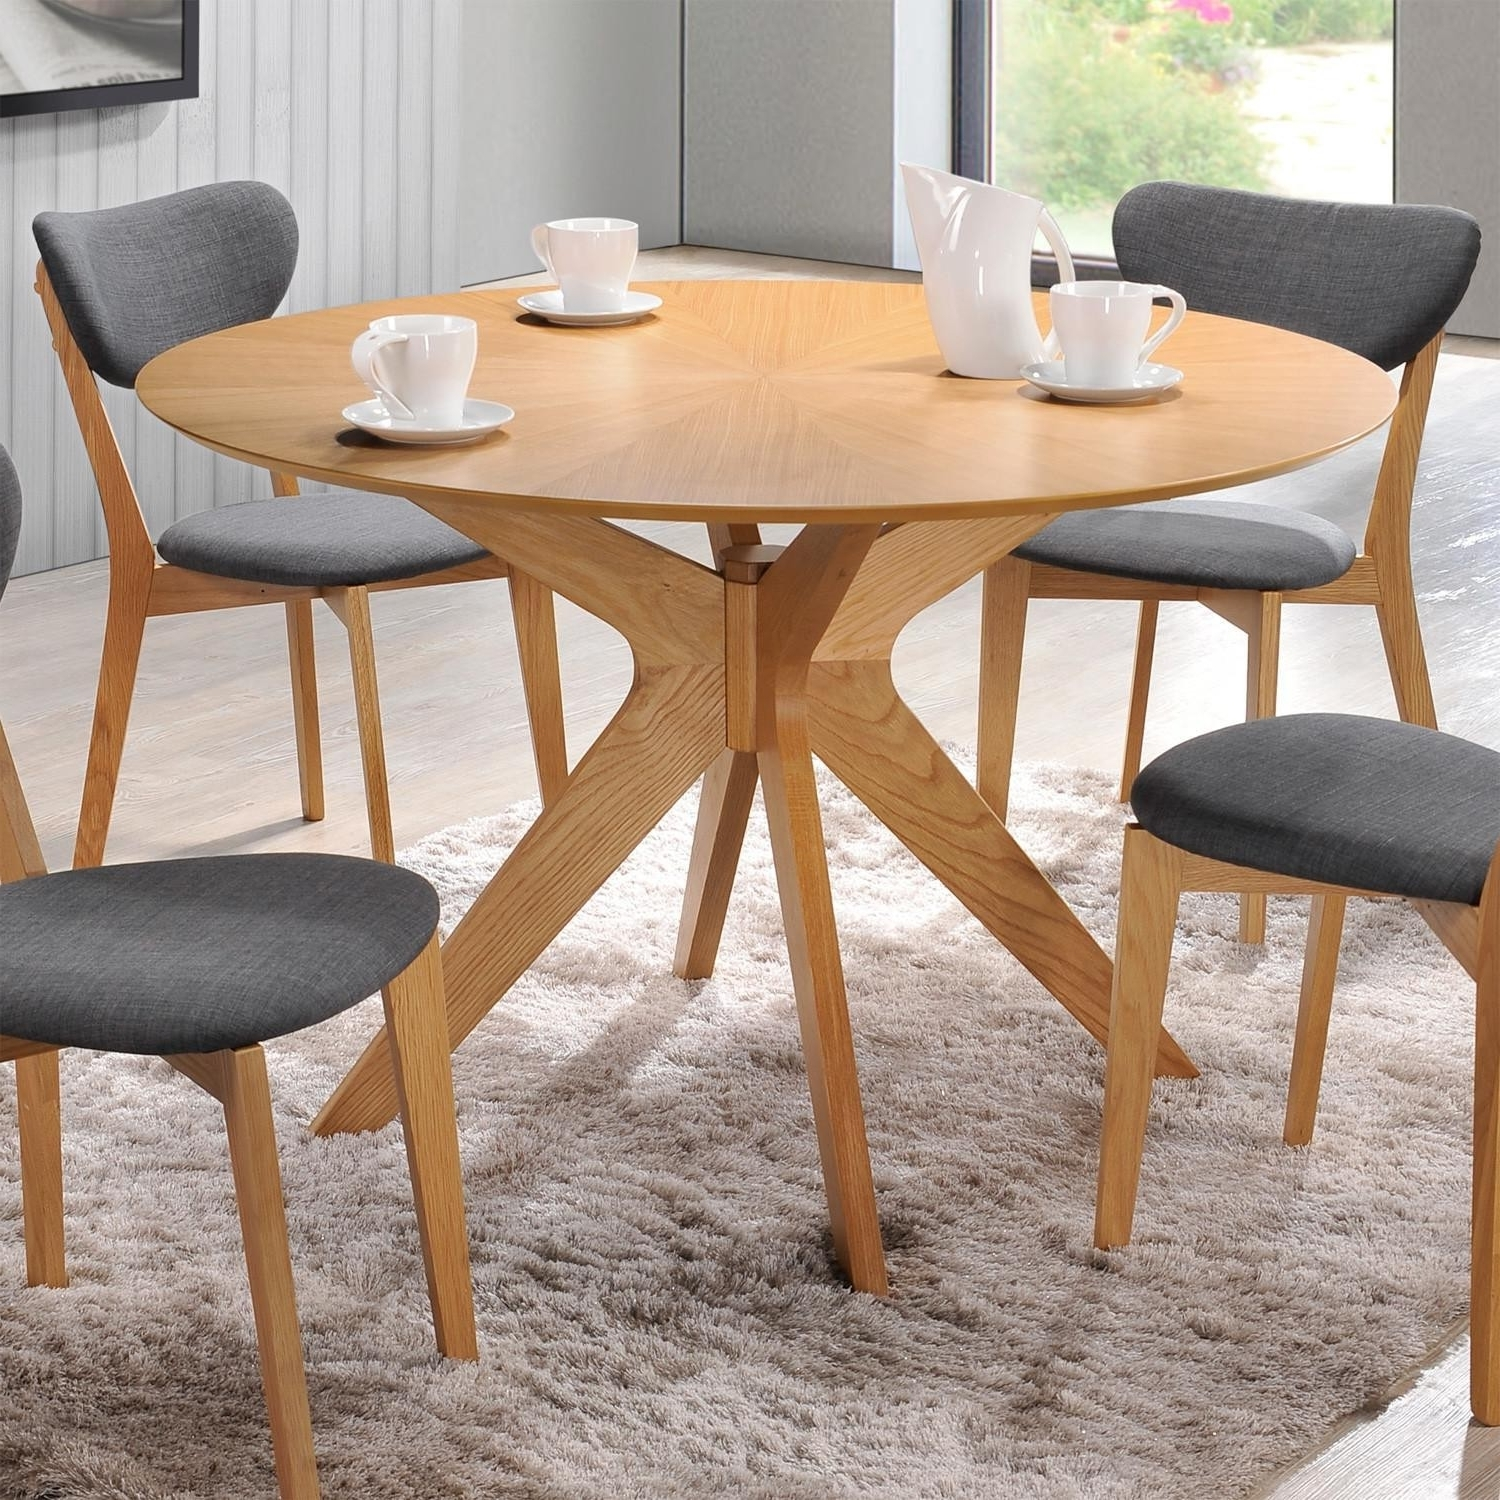 Preferred Scandinavian Dining Tables And Chairs Inside Scandinavian Dining Tables Fresh All Modern Furniture (View 12 of 25)